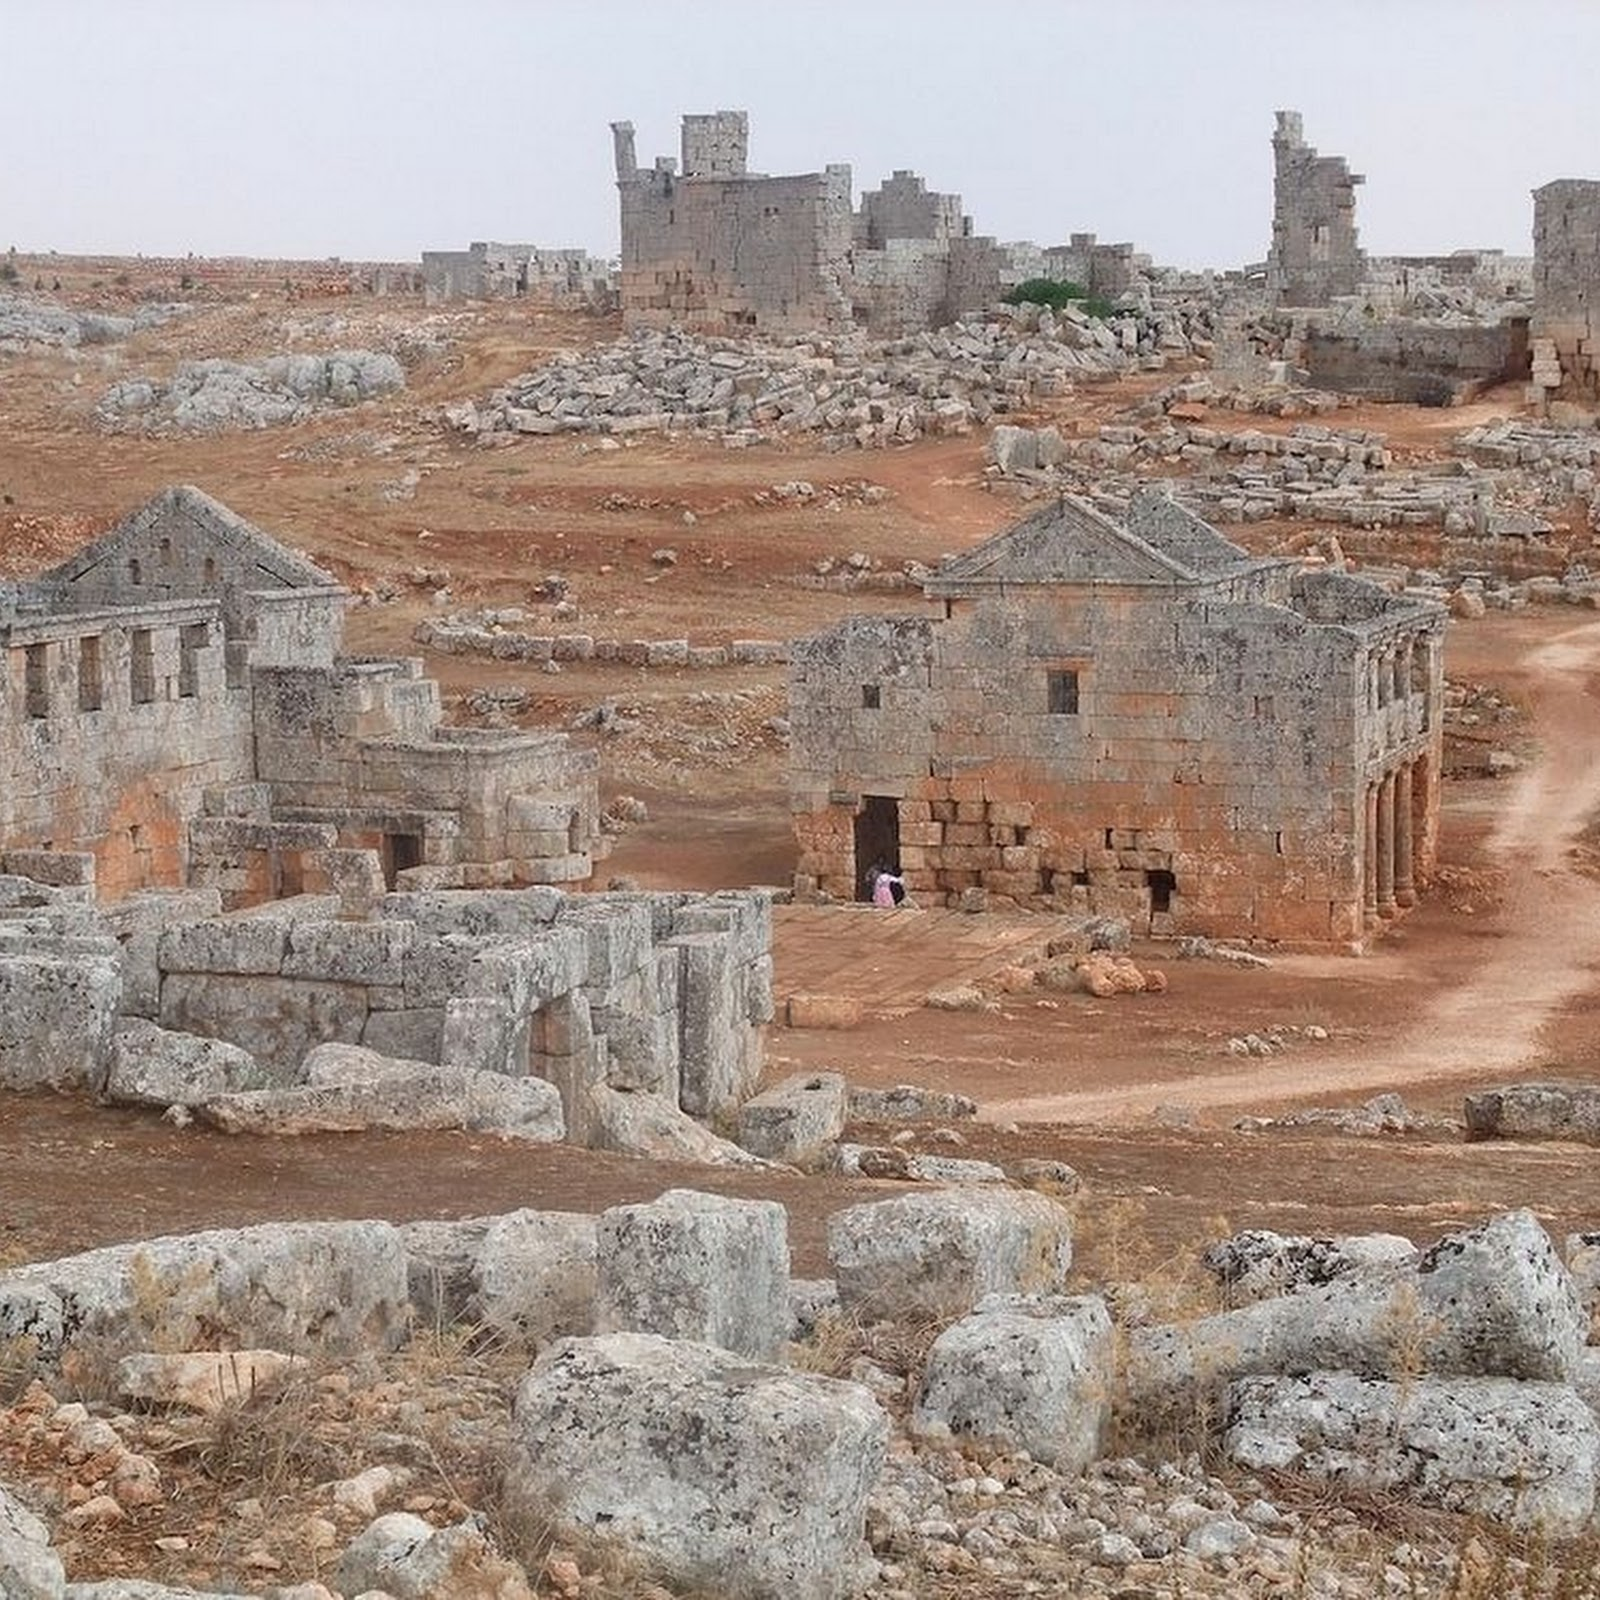 The Dead Cities of Syria